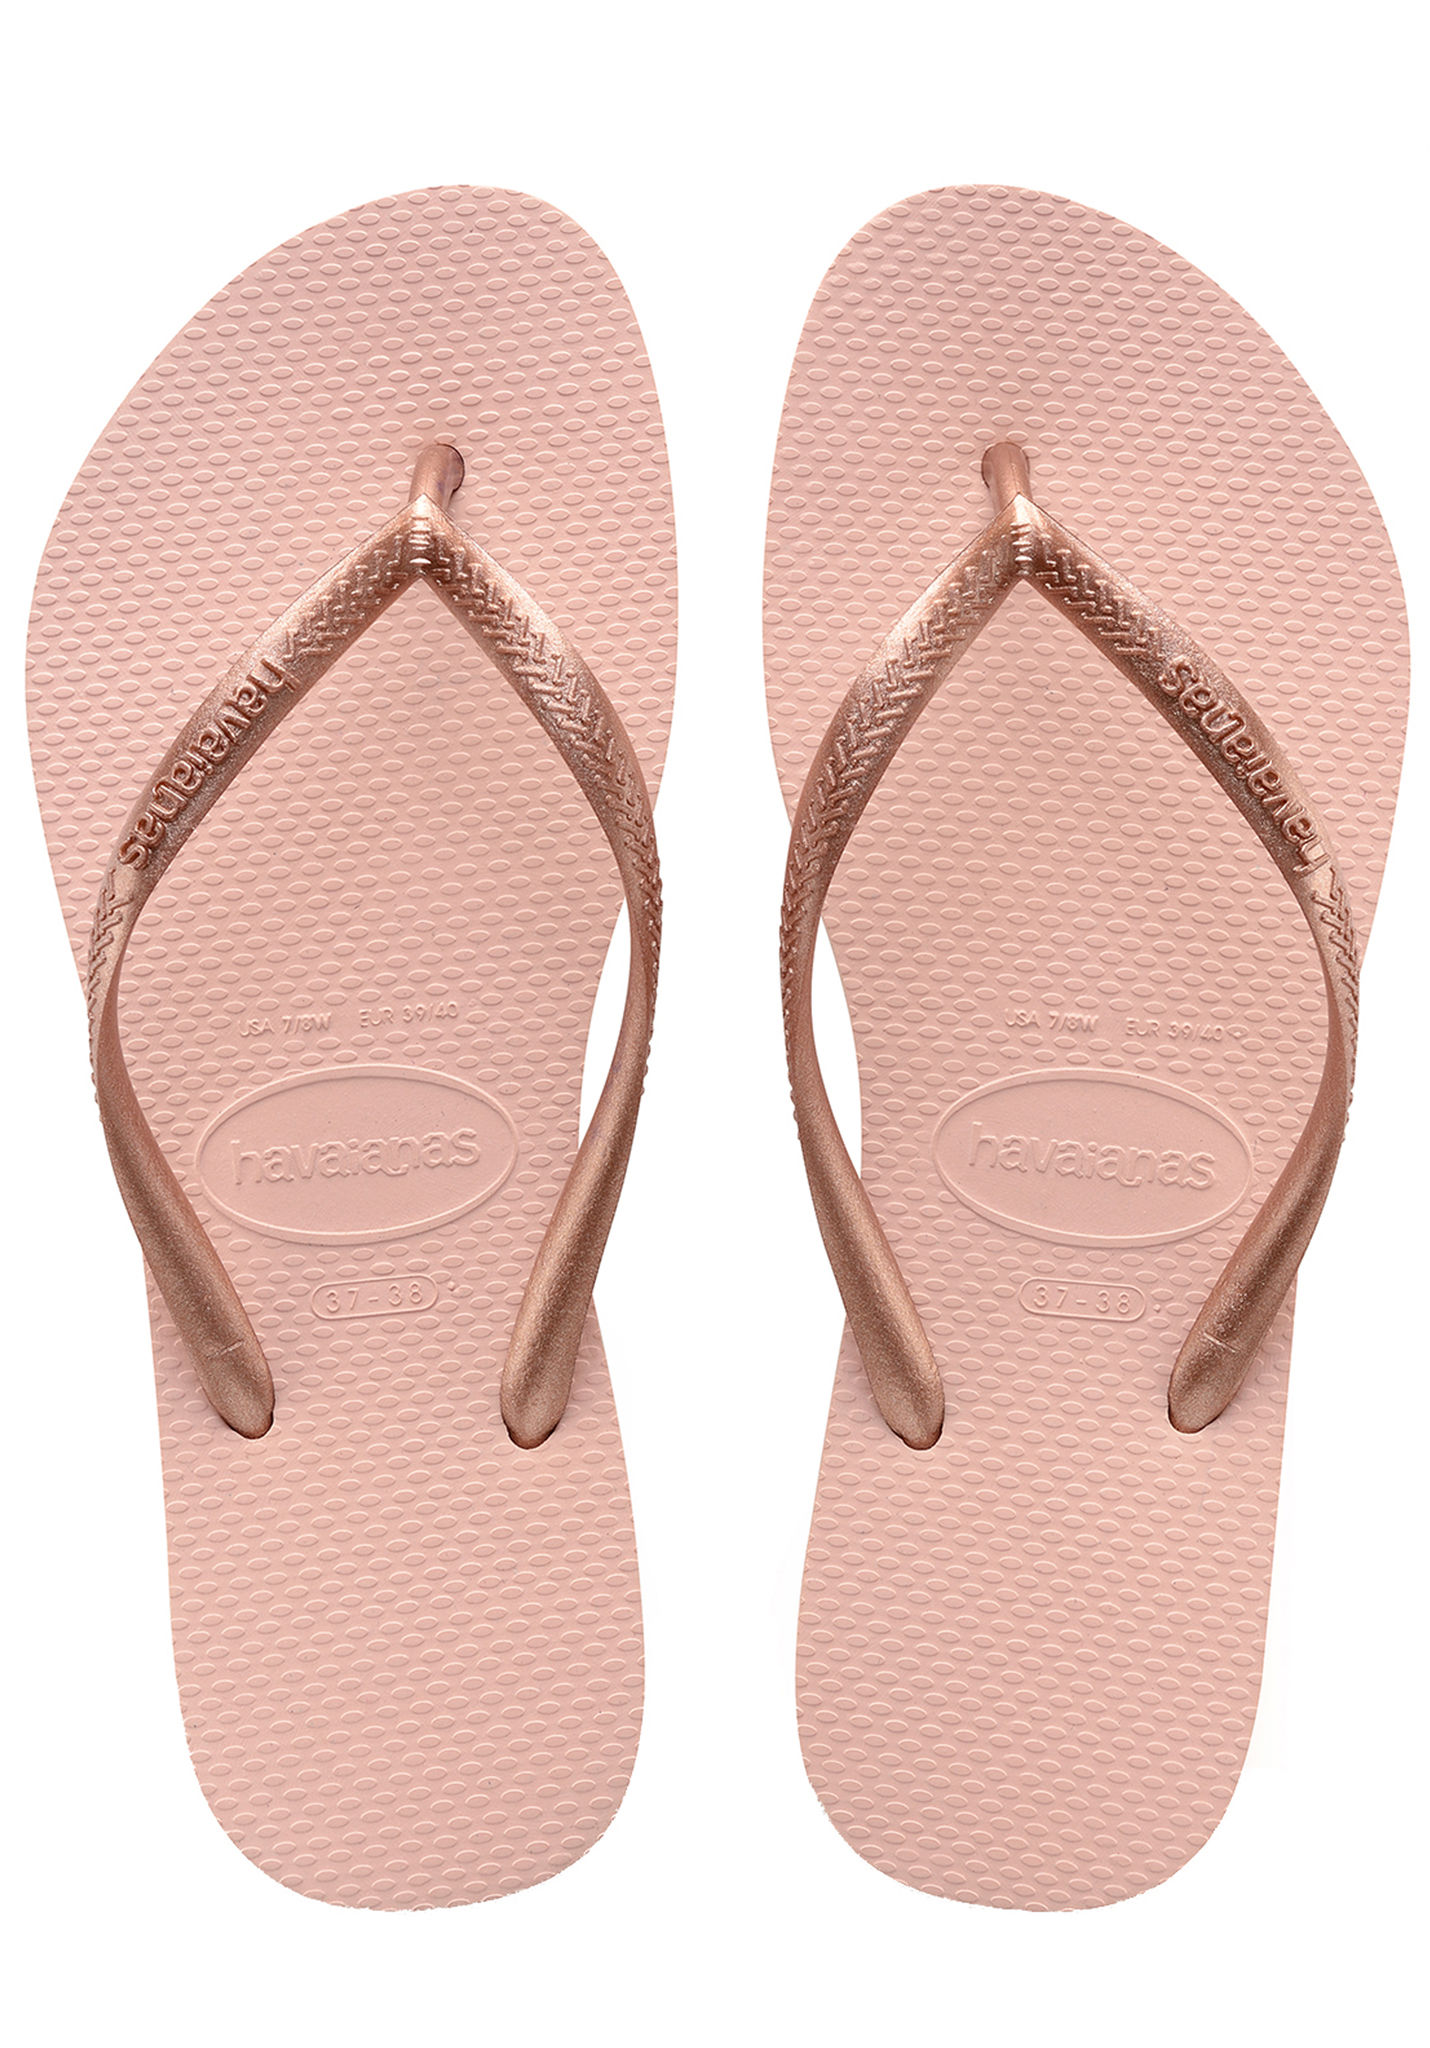 new lower prices detailed images pretty cheap HAVAIANAS Slim - Sandals for Women - Pink